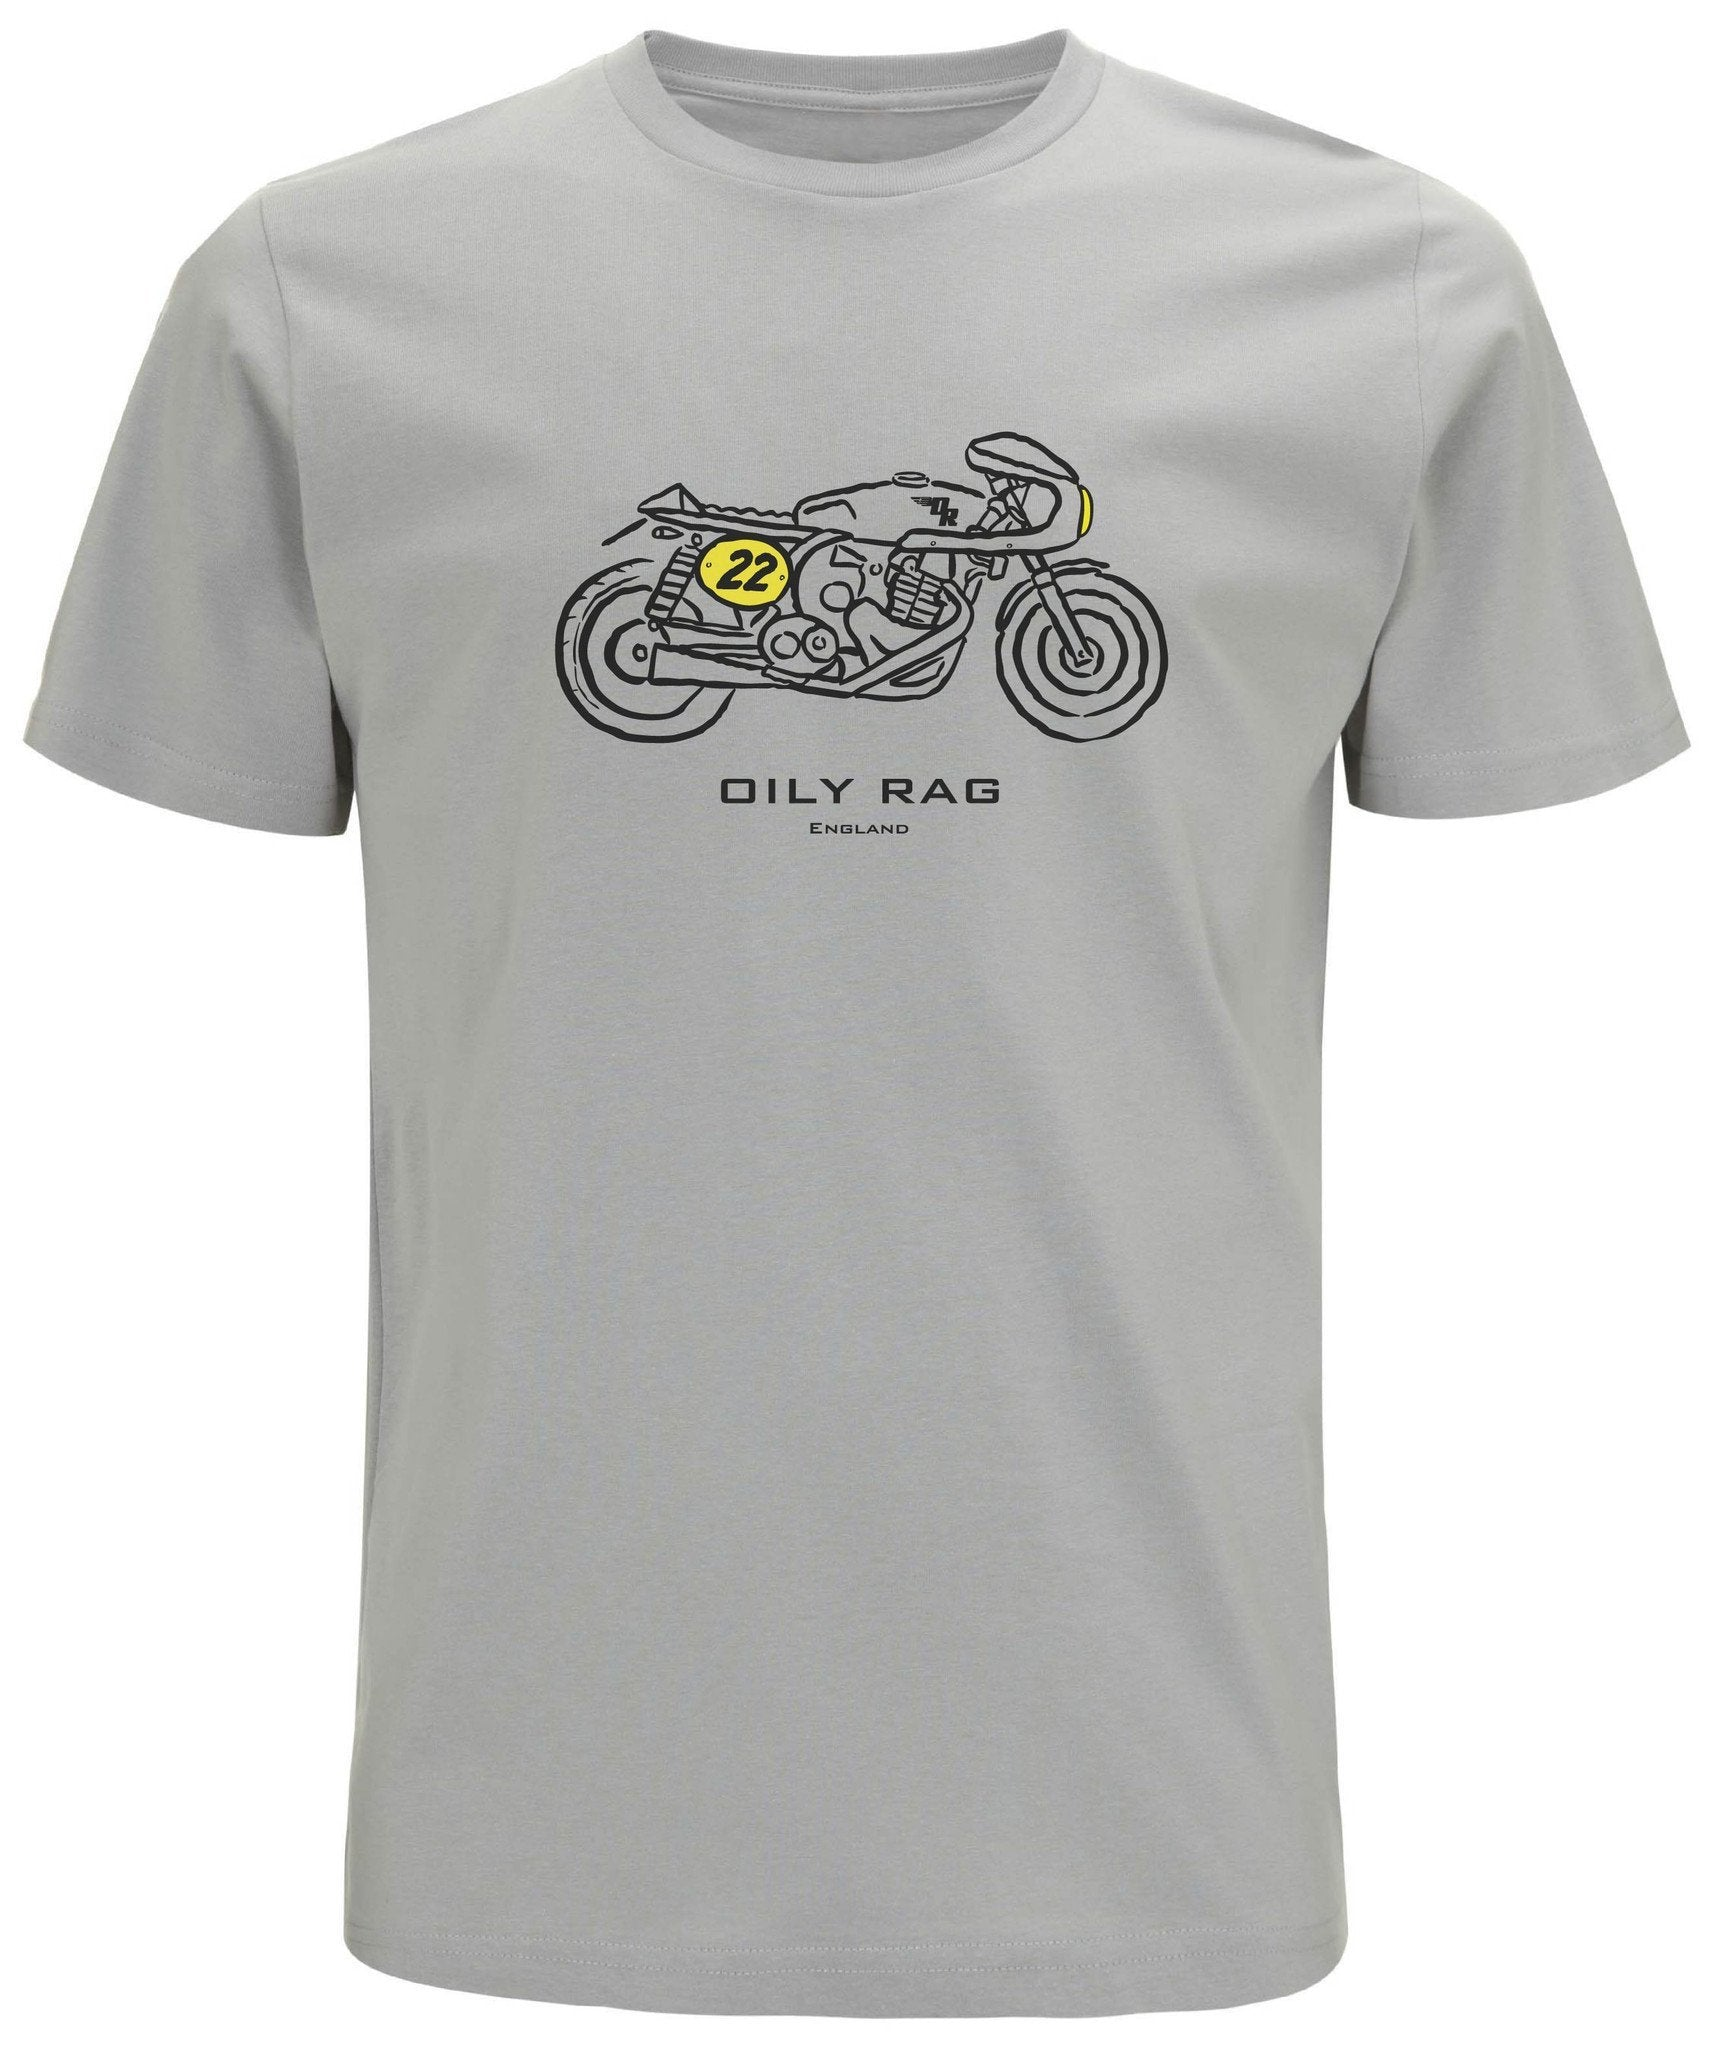 Oily Rag Clothing - Oily Rag Clothing Bike T'Shirt - T-Shirts - Salt Flats Clothing